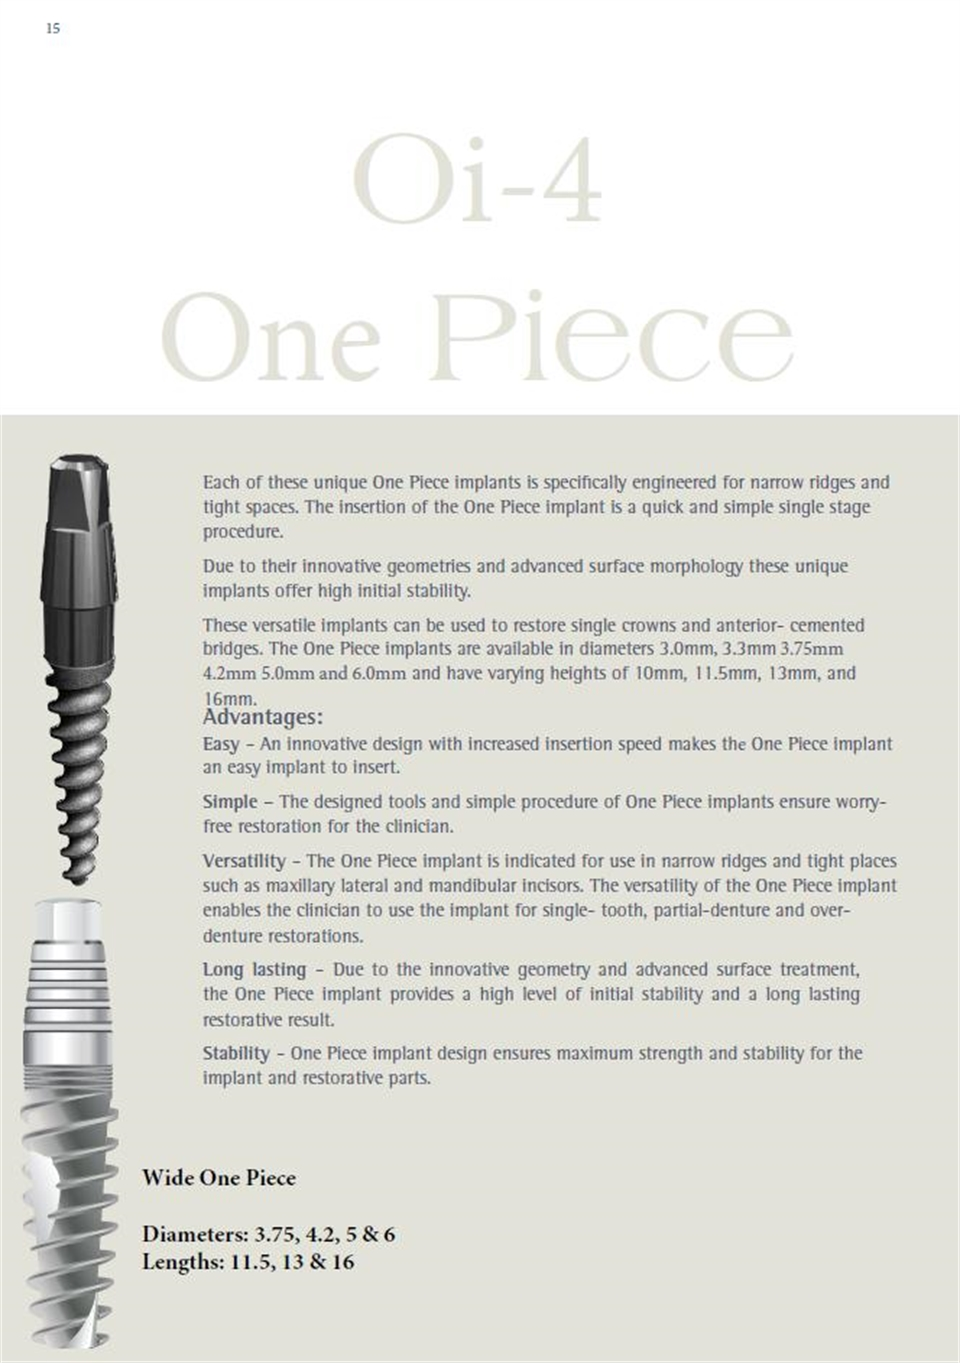 Each of these unique One Piece implants is specifically engineered for narrow ridges and tight spaces.